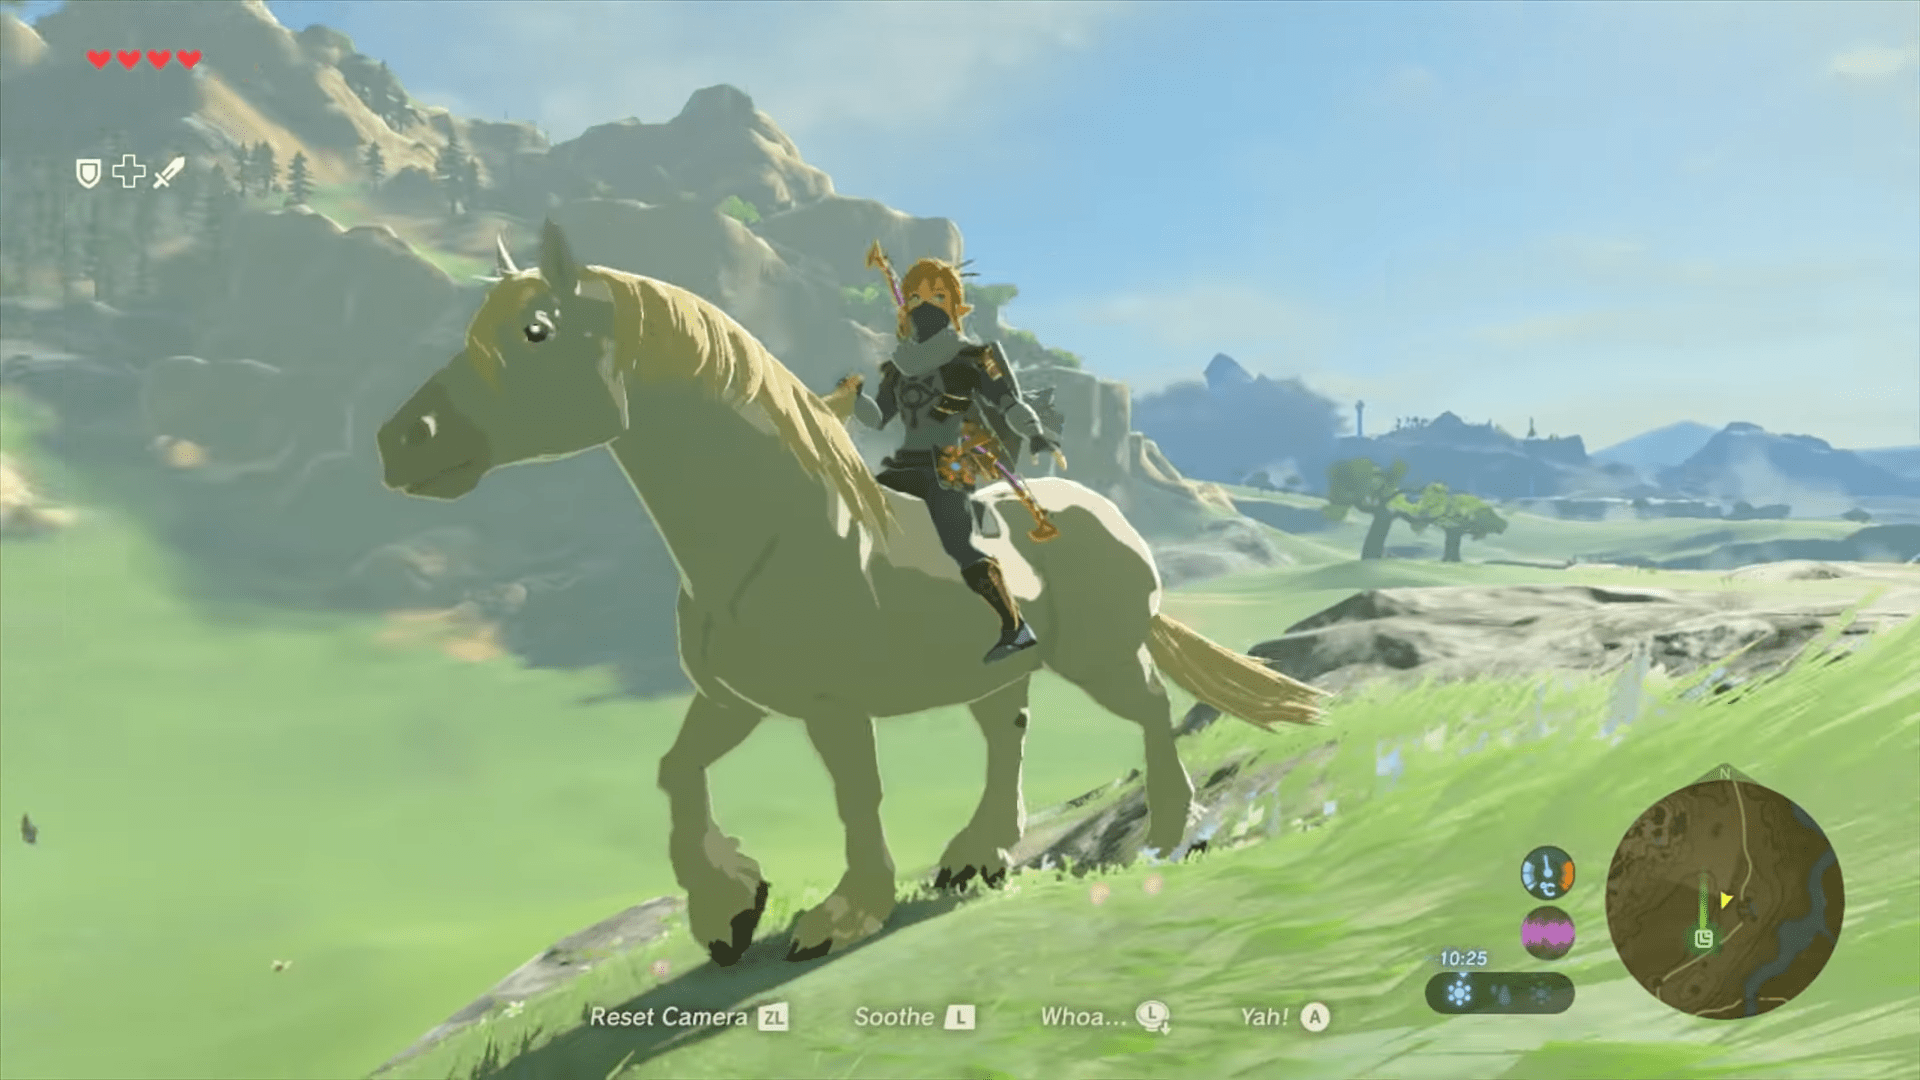 How To Get The Royal White Stallion In The Legend Of Zelda: Breath Of The Wild